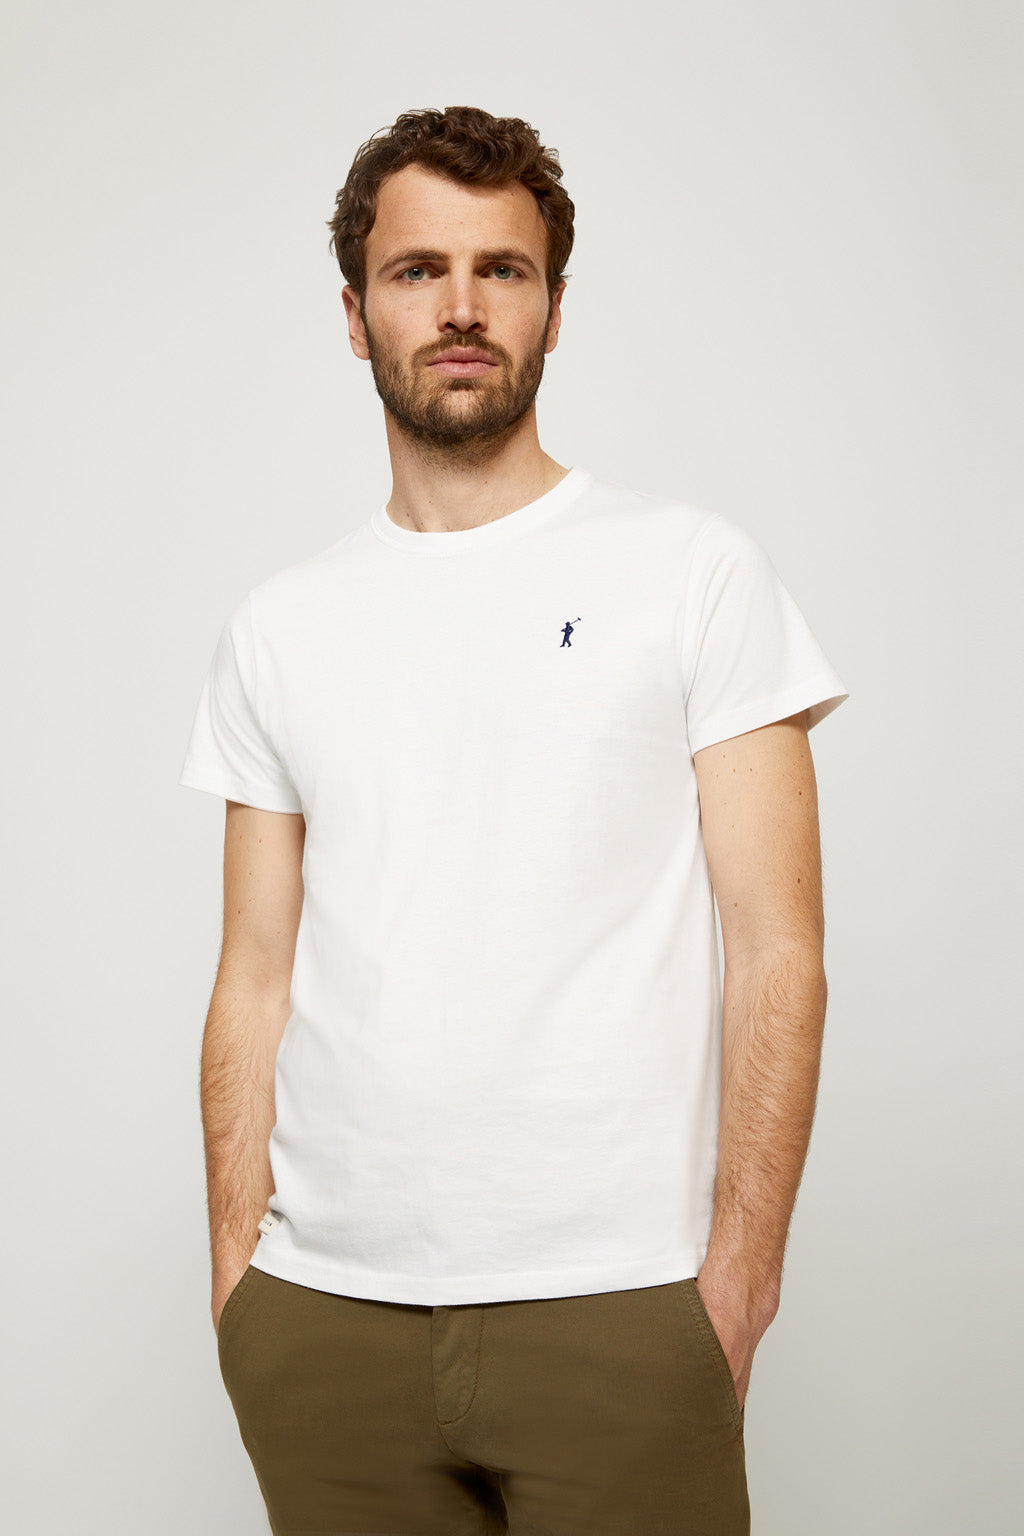 White tee with embroidered logo